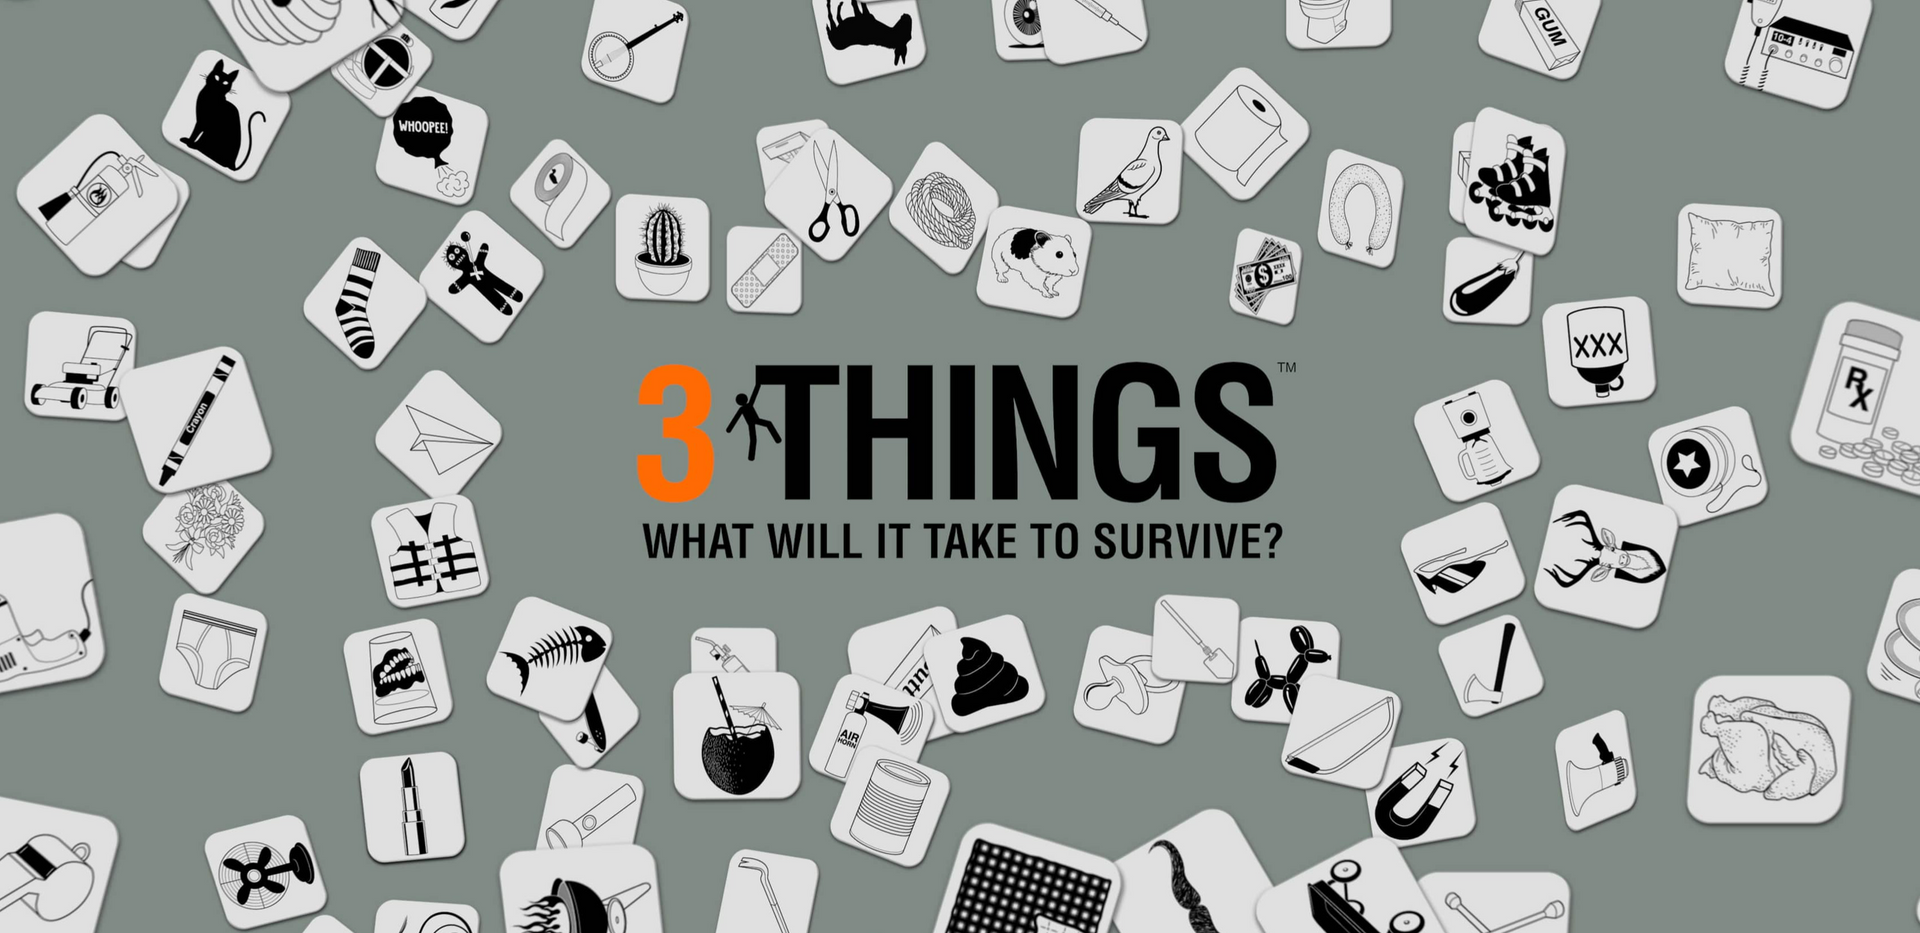 3 Things - What will it take to survive?